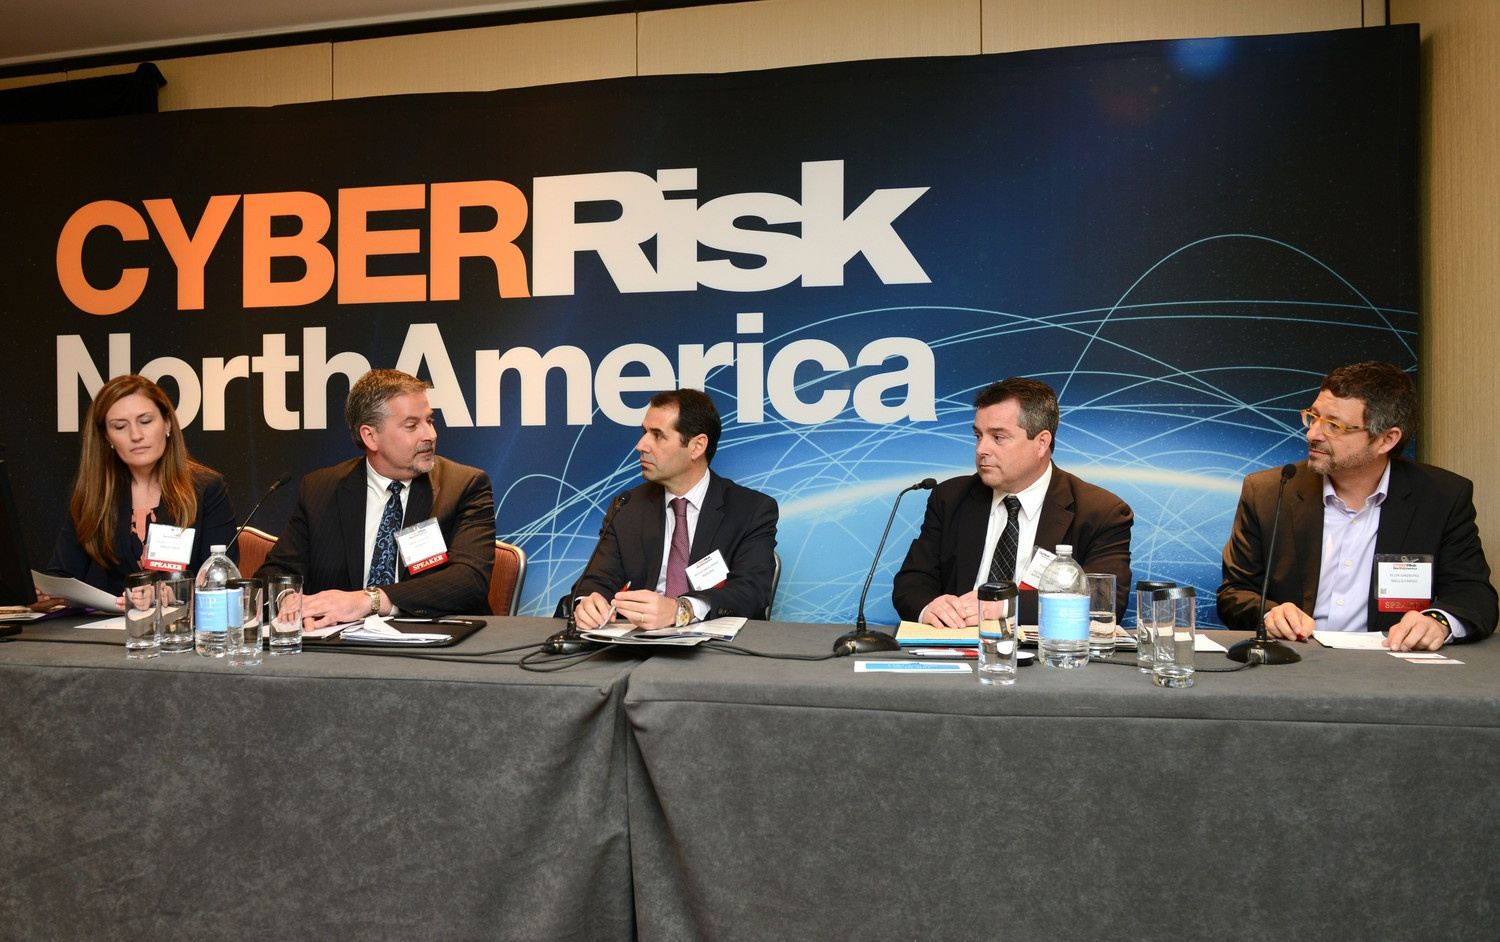 Cyber_Risk_North_America_2016_Panel.jpg